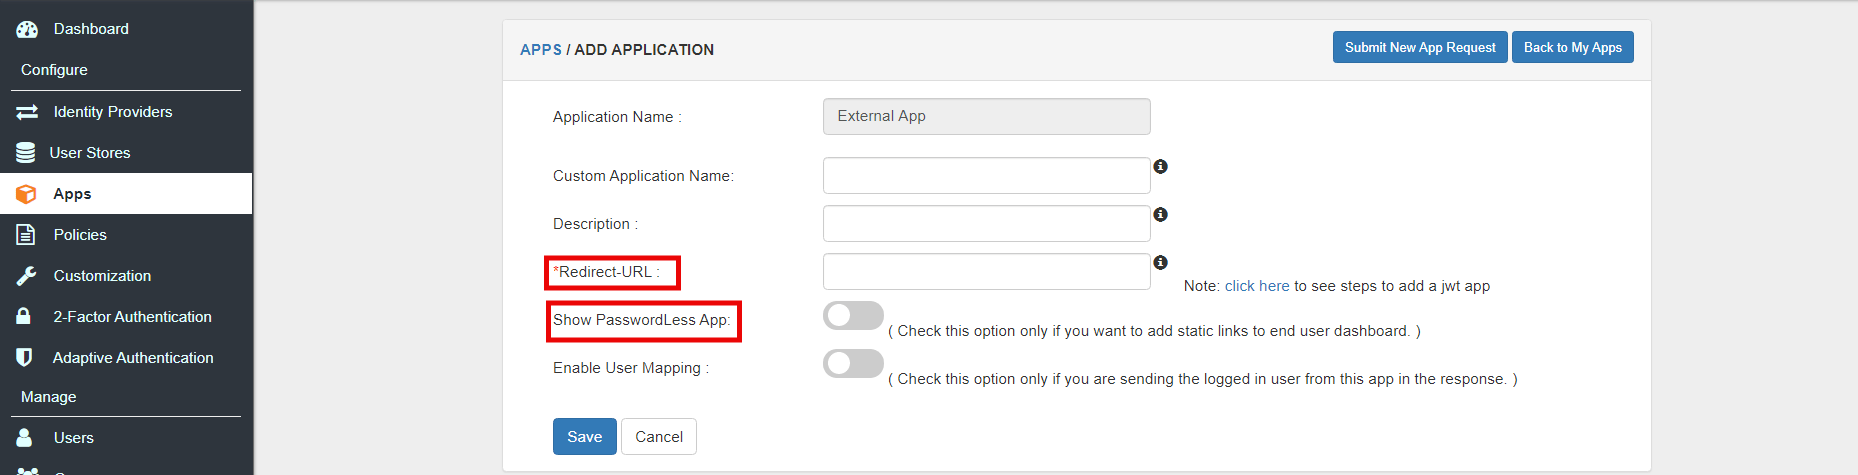 sharepoint sso check the following option